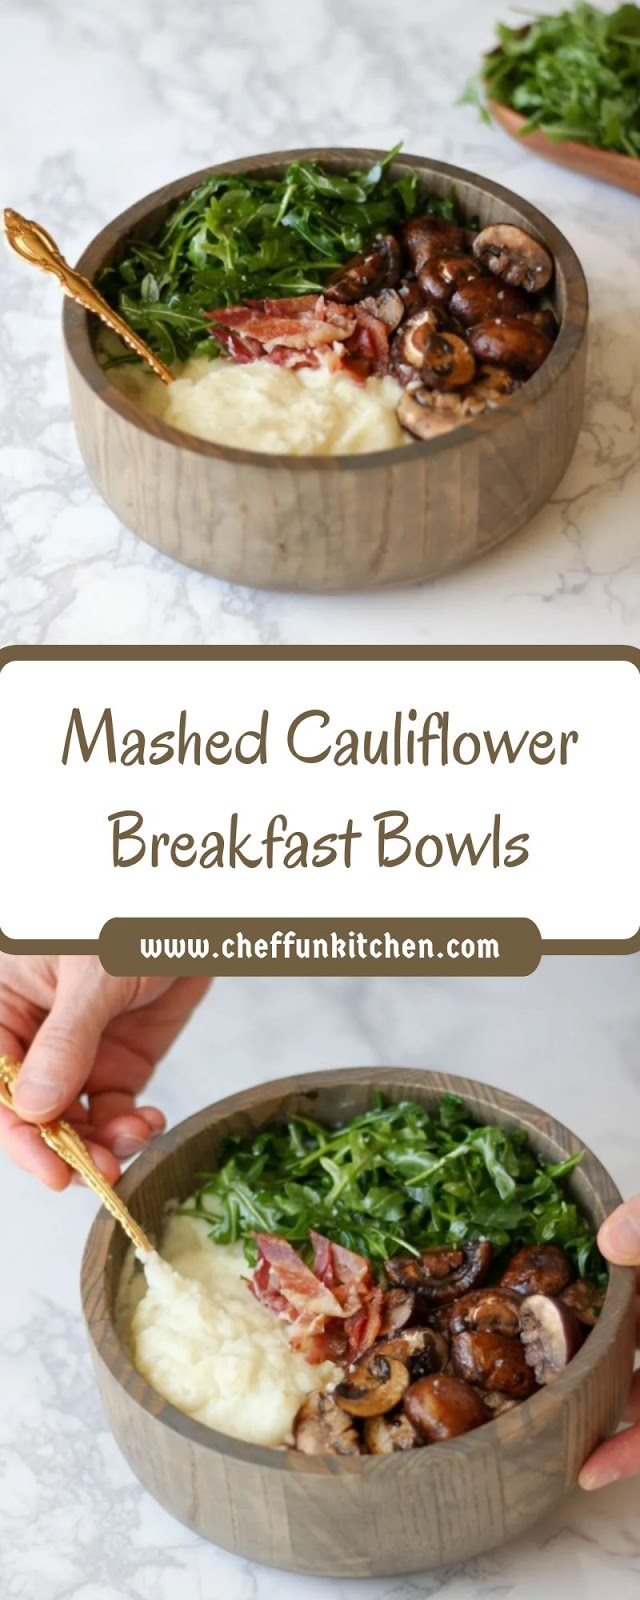 Mashed Cauliflower Breakfast Bowls